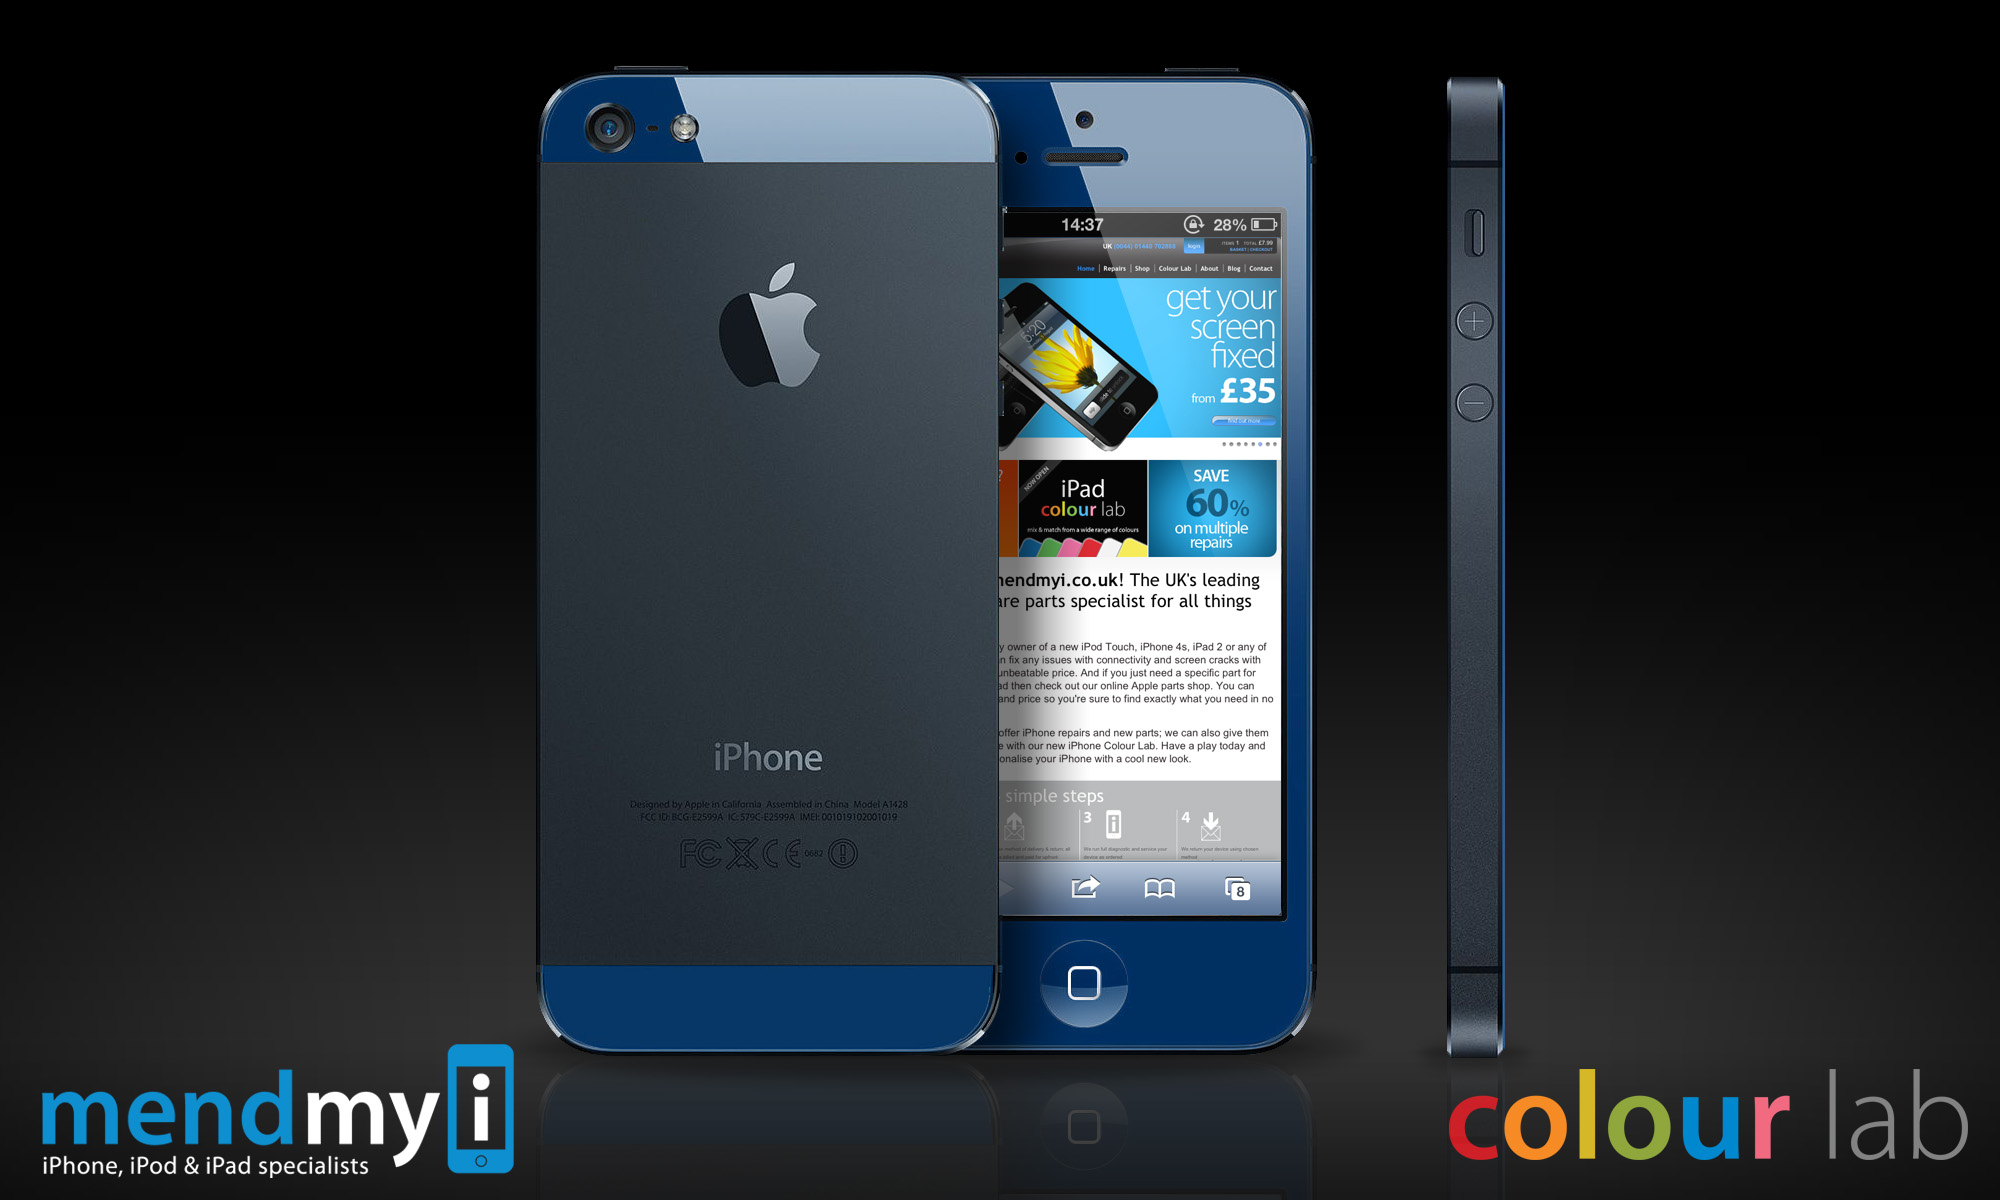 mendmyi – What The iPhone 5 Should Look Like – iPhone 5 ...